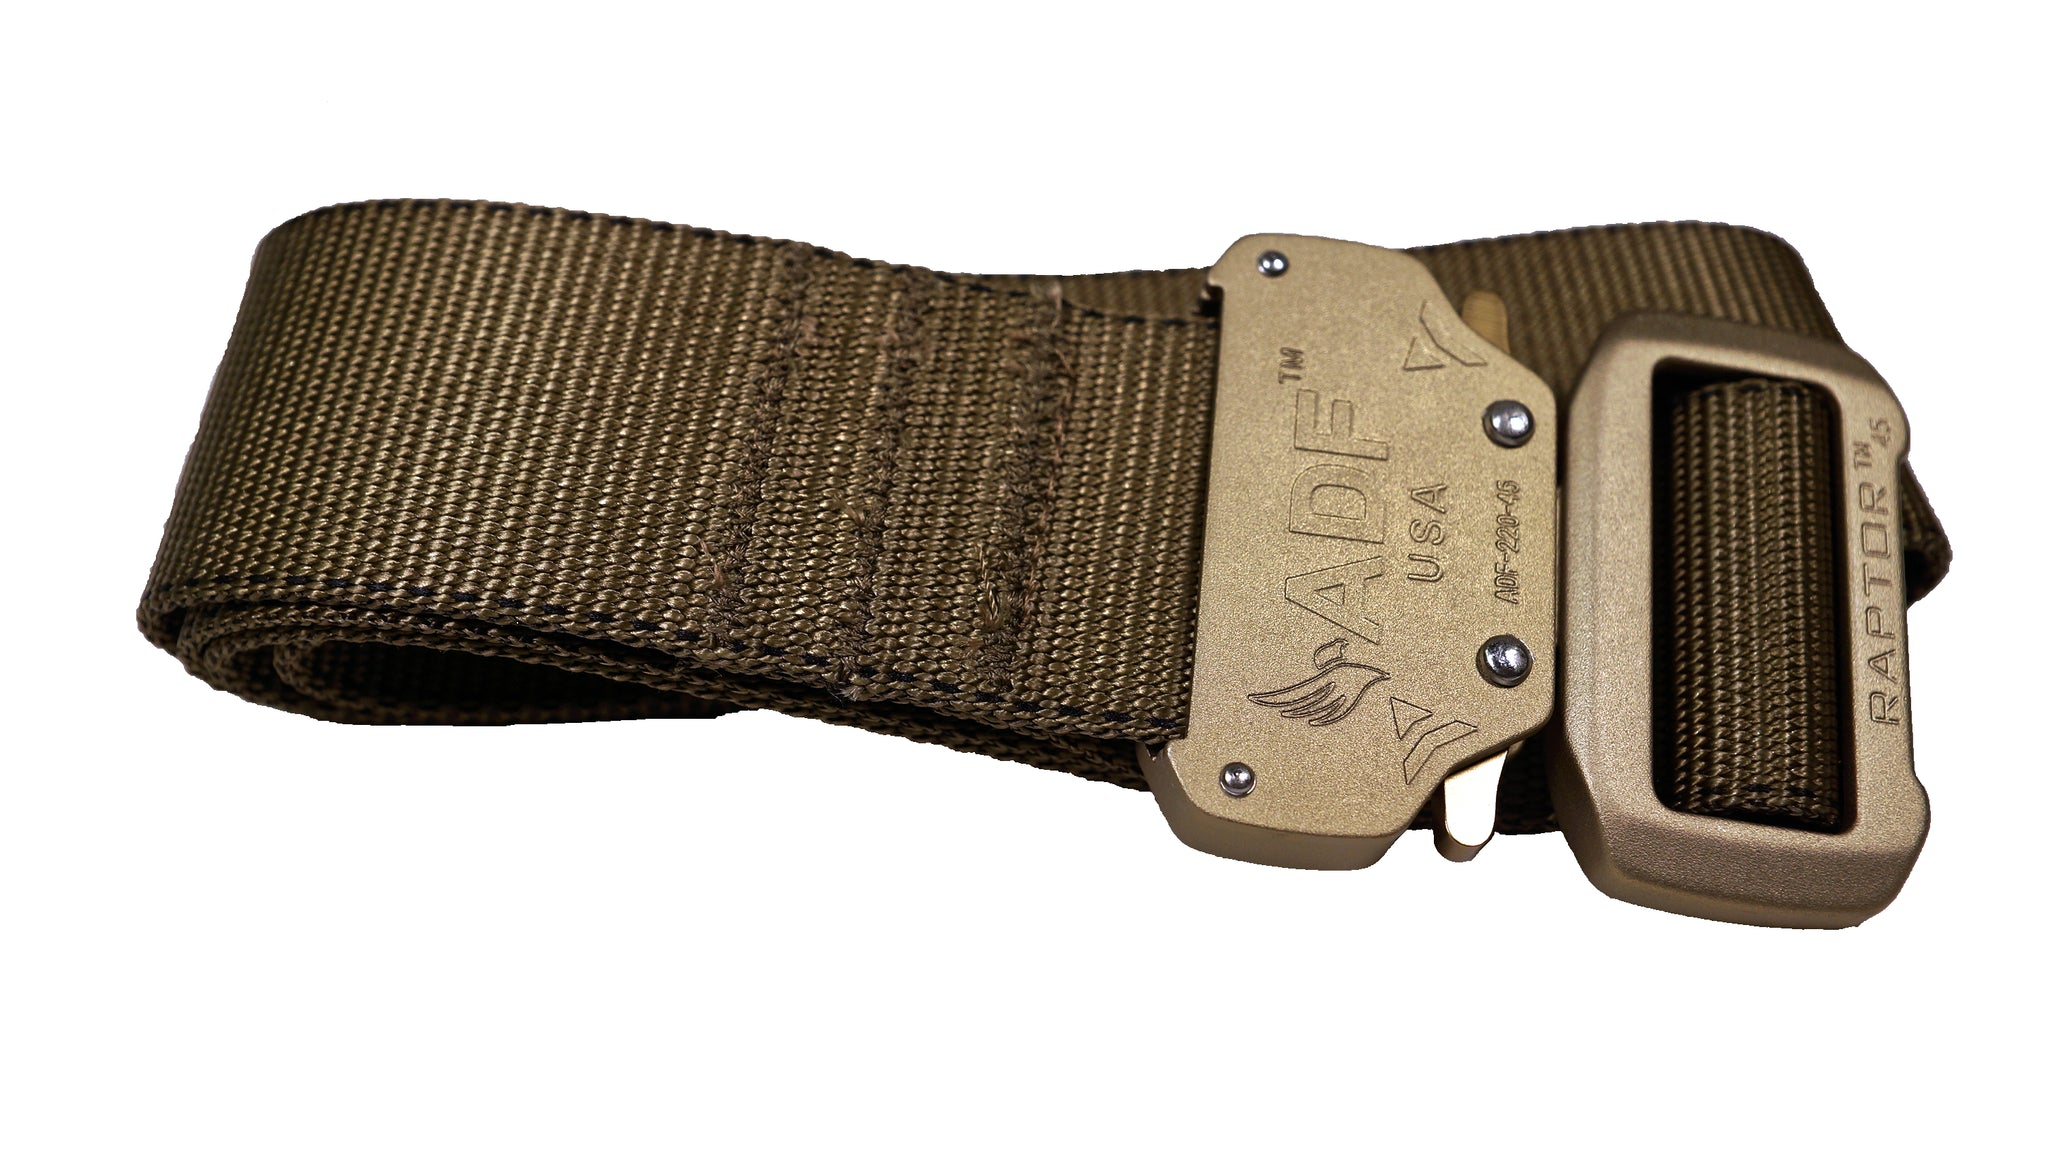 Tan/Coyote lightweight military-style tactical belt with quick release double-locking buckle.